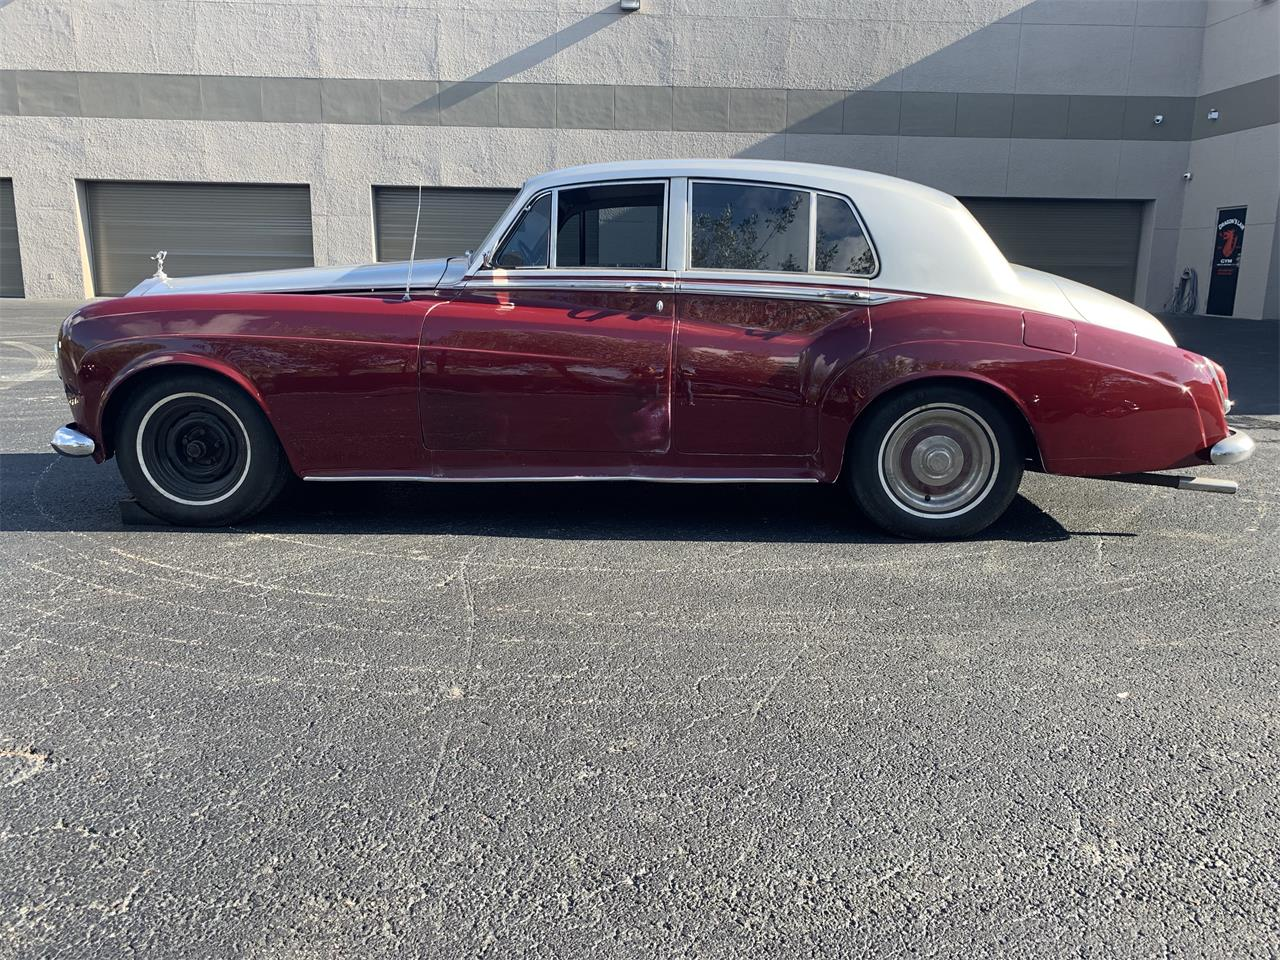 Large Picture of '64 Rolls-Royce Silver Cloud III located in BOCA RATON Florida - $49,000.00 Offered by European Autobody, Inc. - PXPV